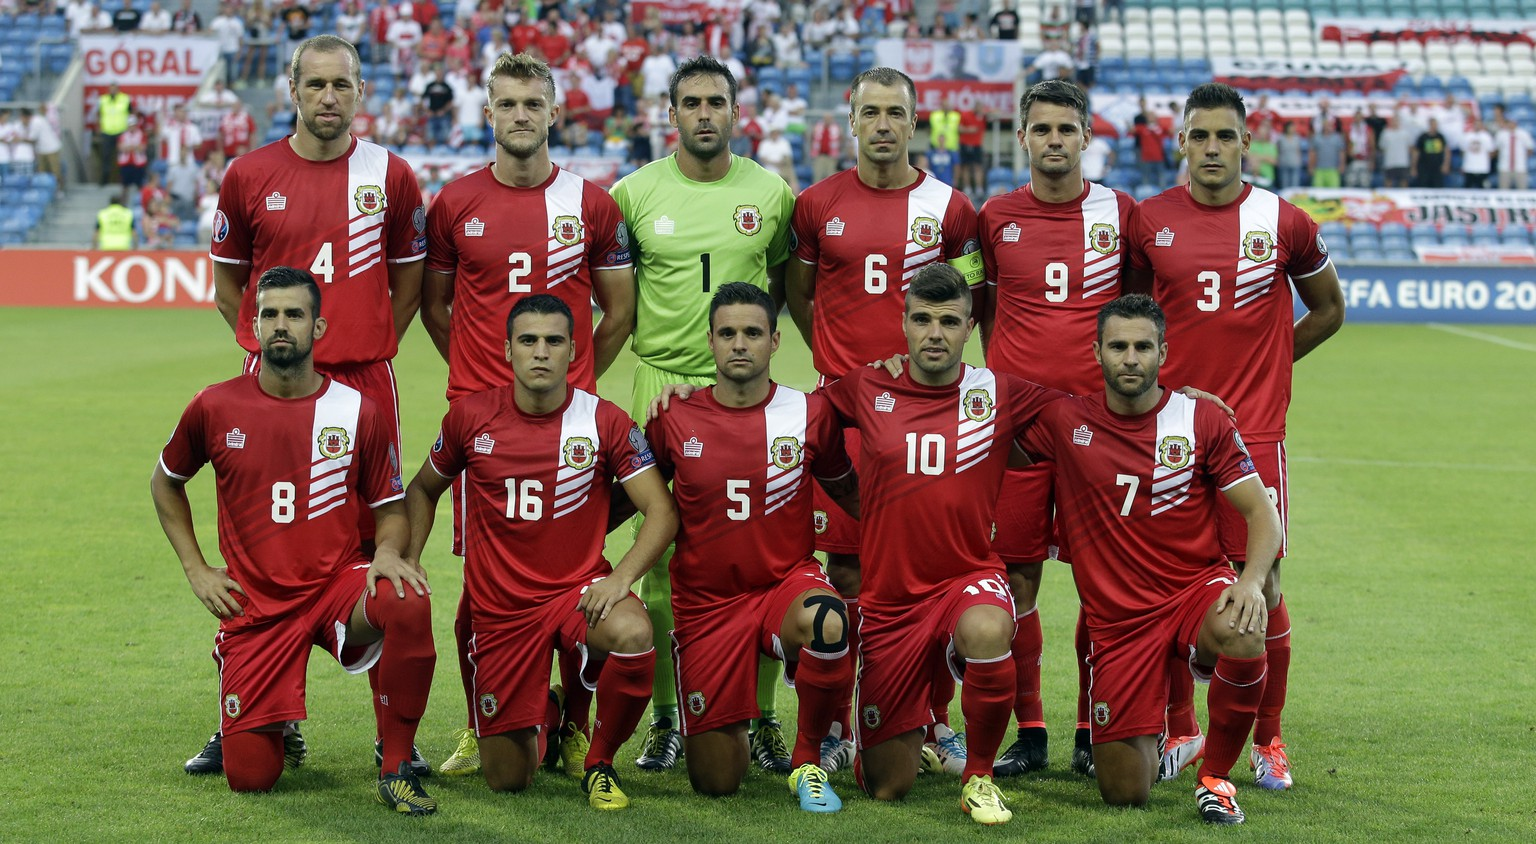 Gibraltar's players David Artell, Scott Wiseman, goalkeeper Jordan Perez, Roy Chipolina, Kyle Casciaro, Joseph Chipolina, upper row from left, and Rafael Bado, Brian Perez, Ryan Casciaro, Liam Walker, Lee Casciaro, lower row from left, pose for the photographers prior an Euro2016 Group D qualifying round soccer match between Gibraltar and Poland at the Algarve stadium in Faro, southern Portugal, Sunday, Sept. 7, 2014. Poland defeated Gibraltar 7-0. (AP Photo/Francisco Seco)